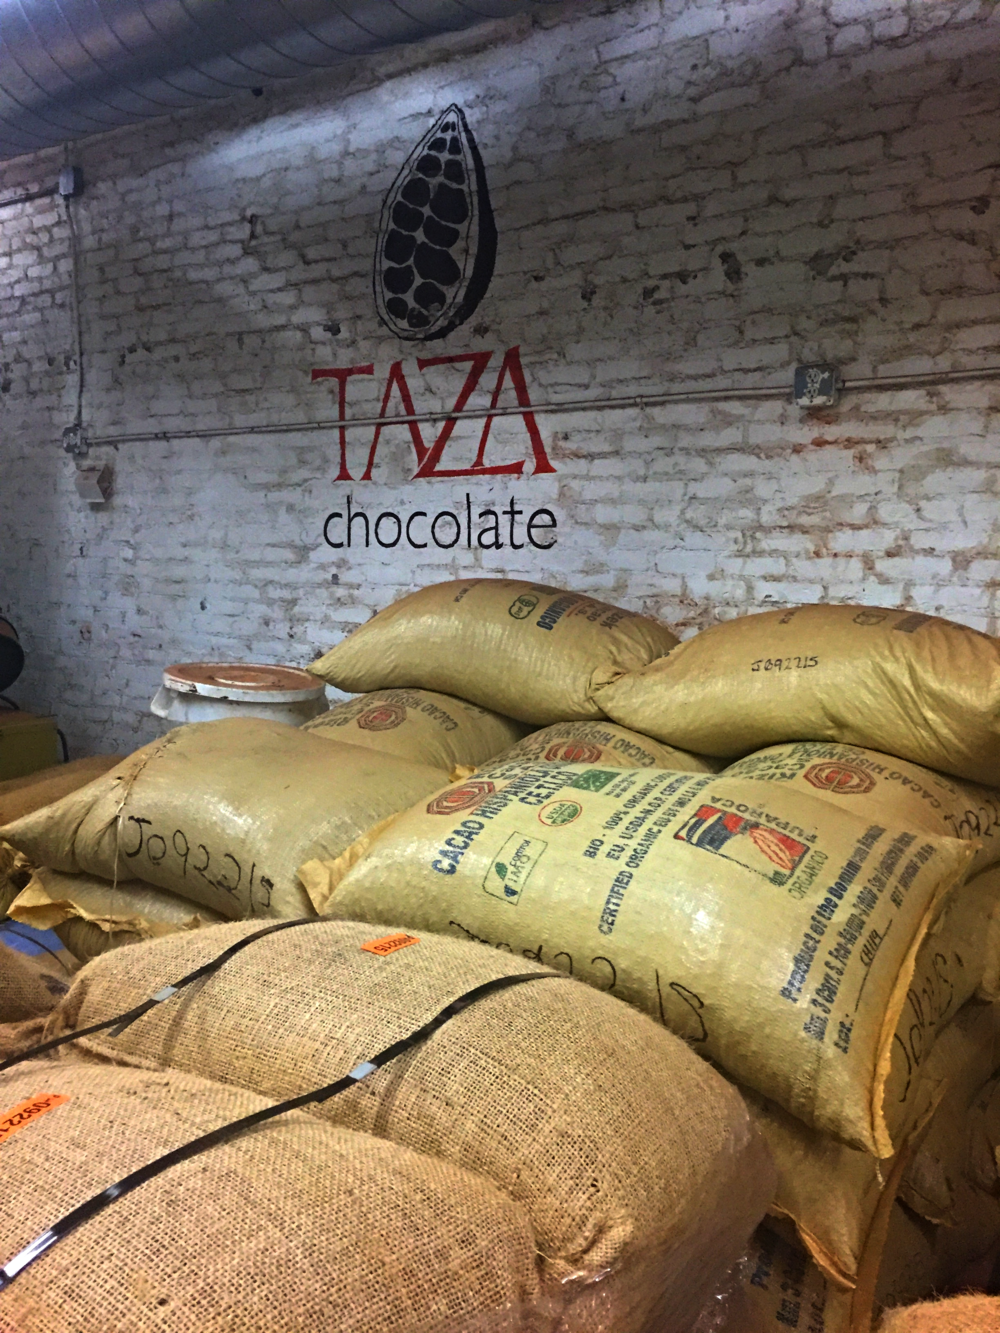 Packages and packages and packages of cocoa